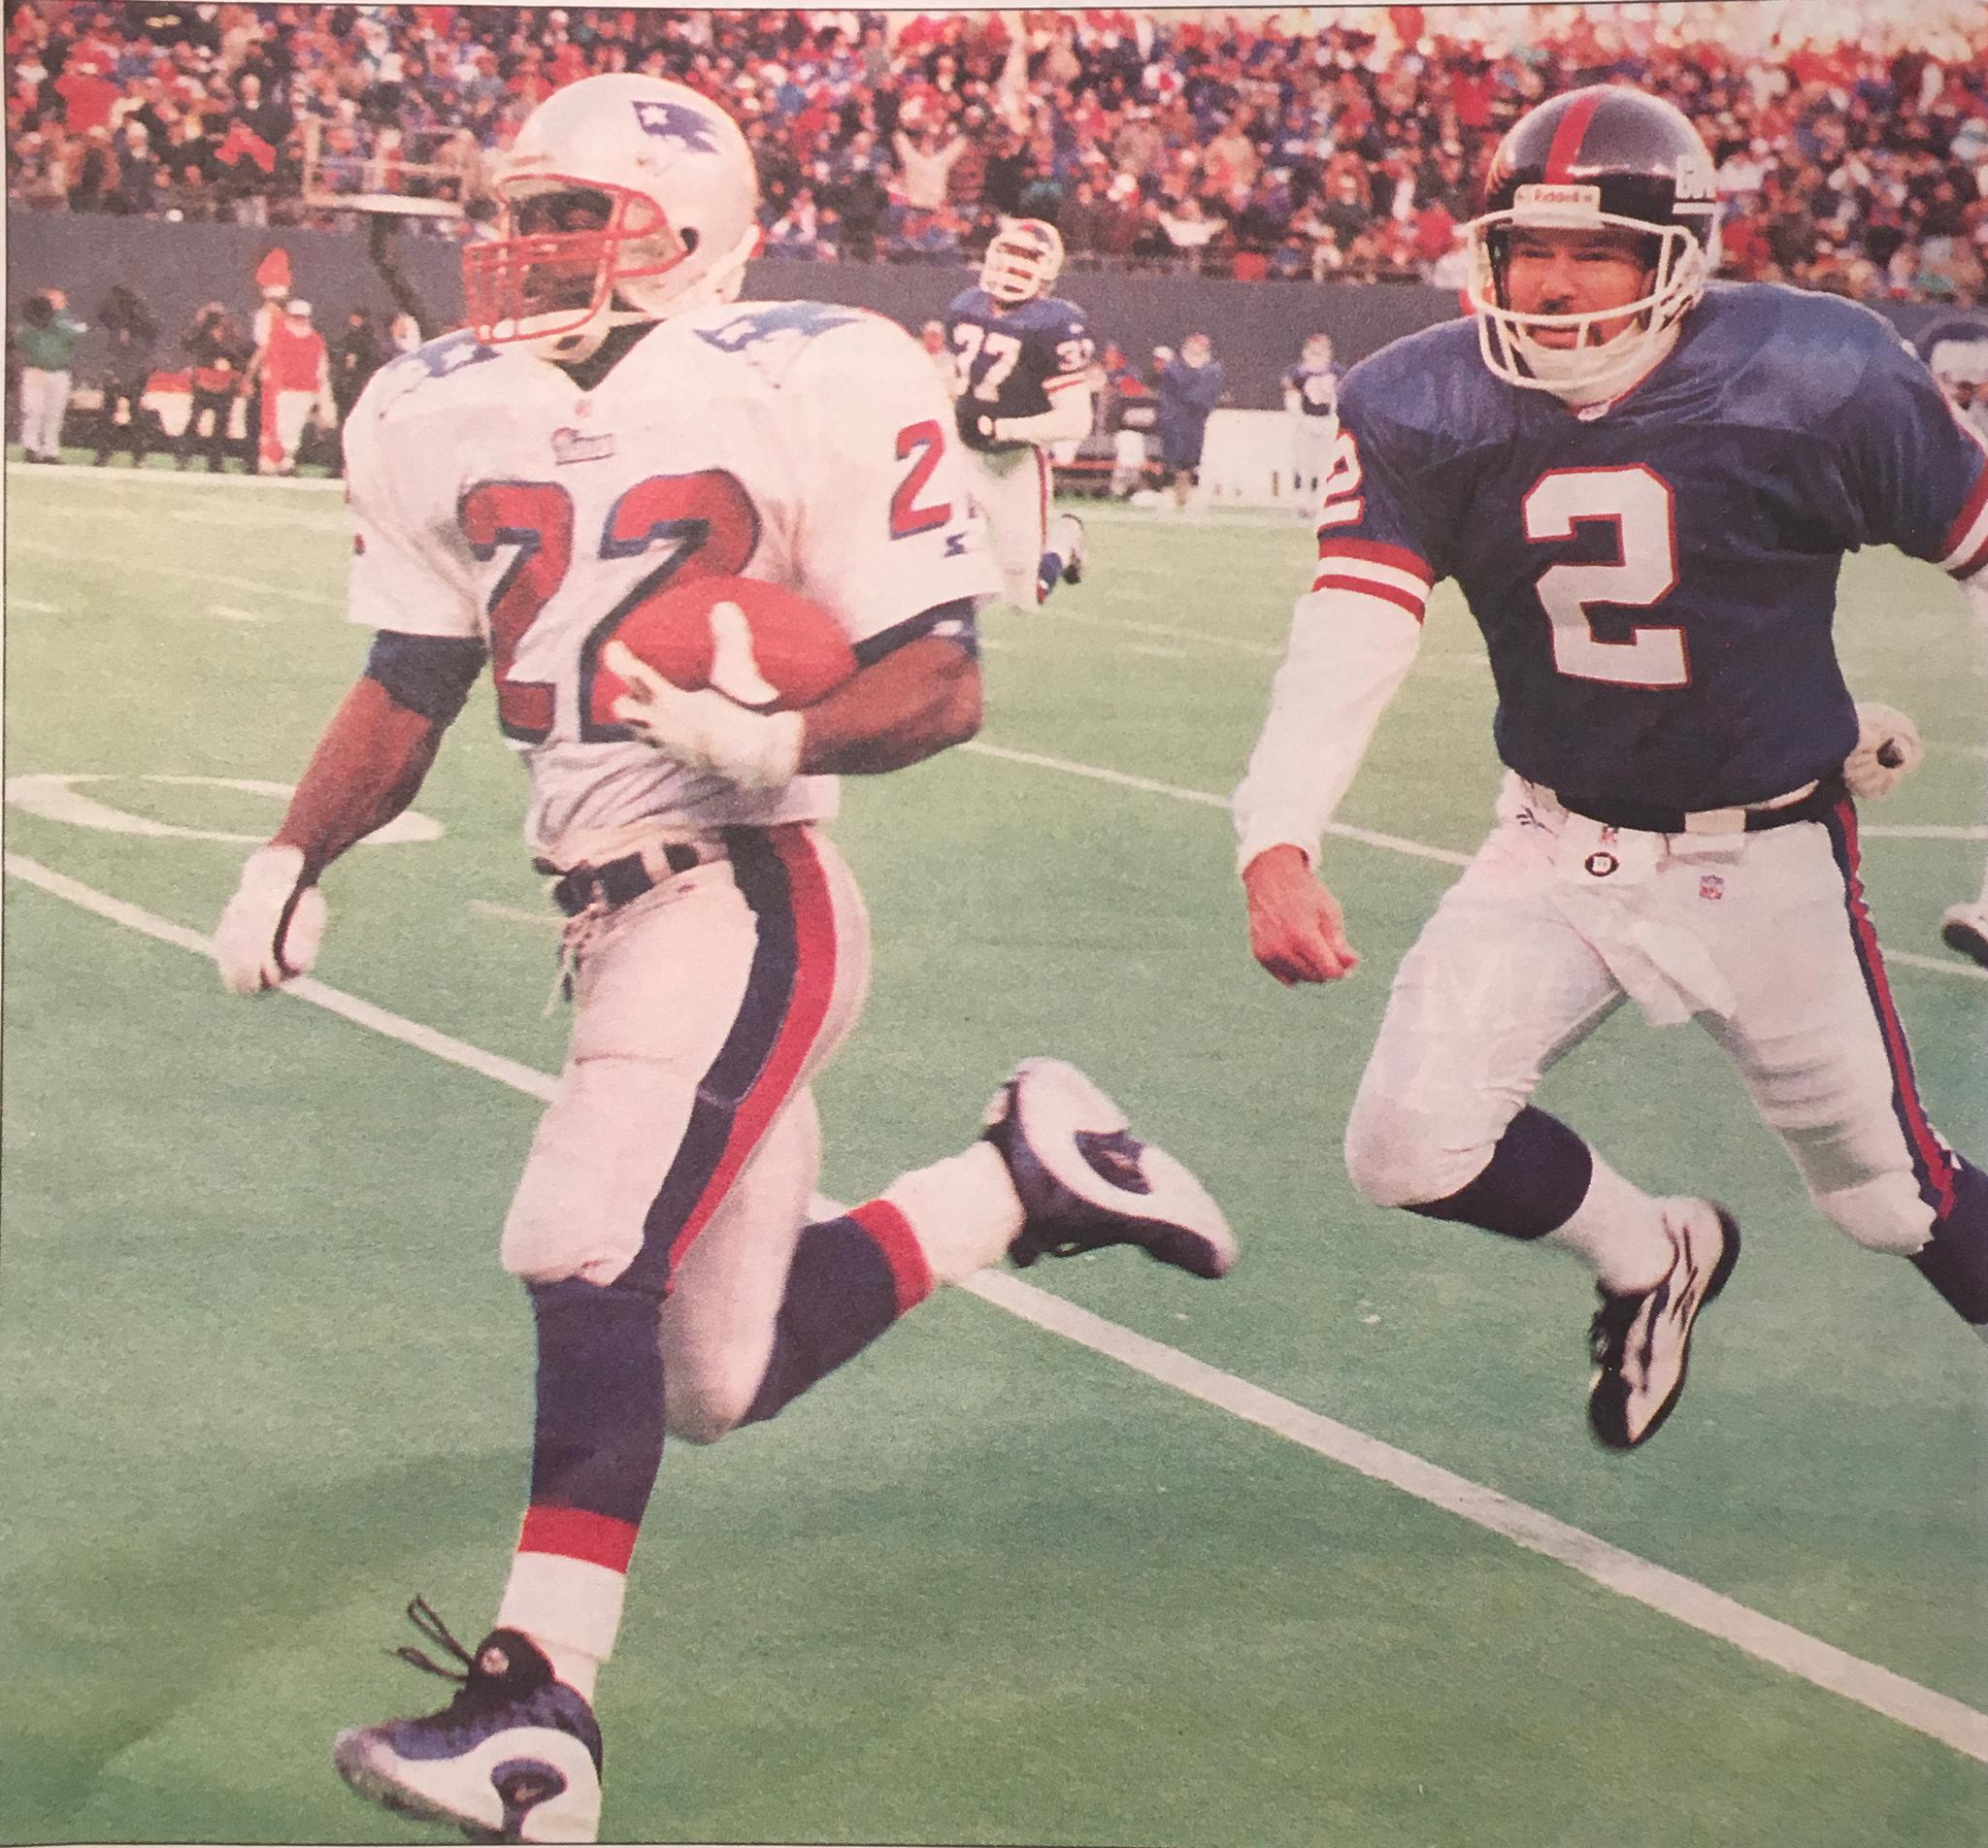 Dave Meggett outruns punter Mike Horan for a punt return for a touchdown.